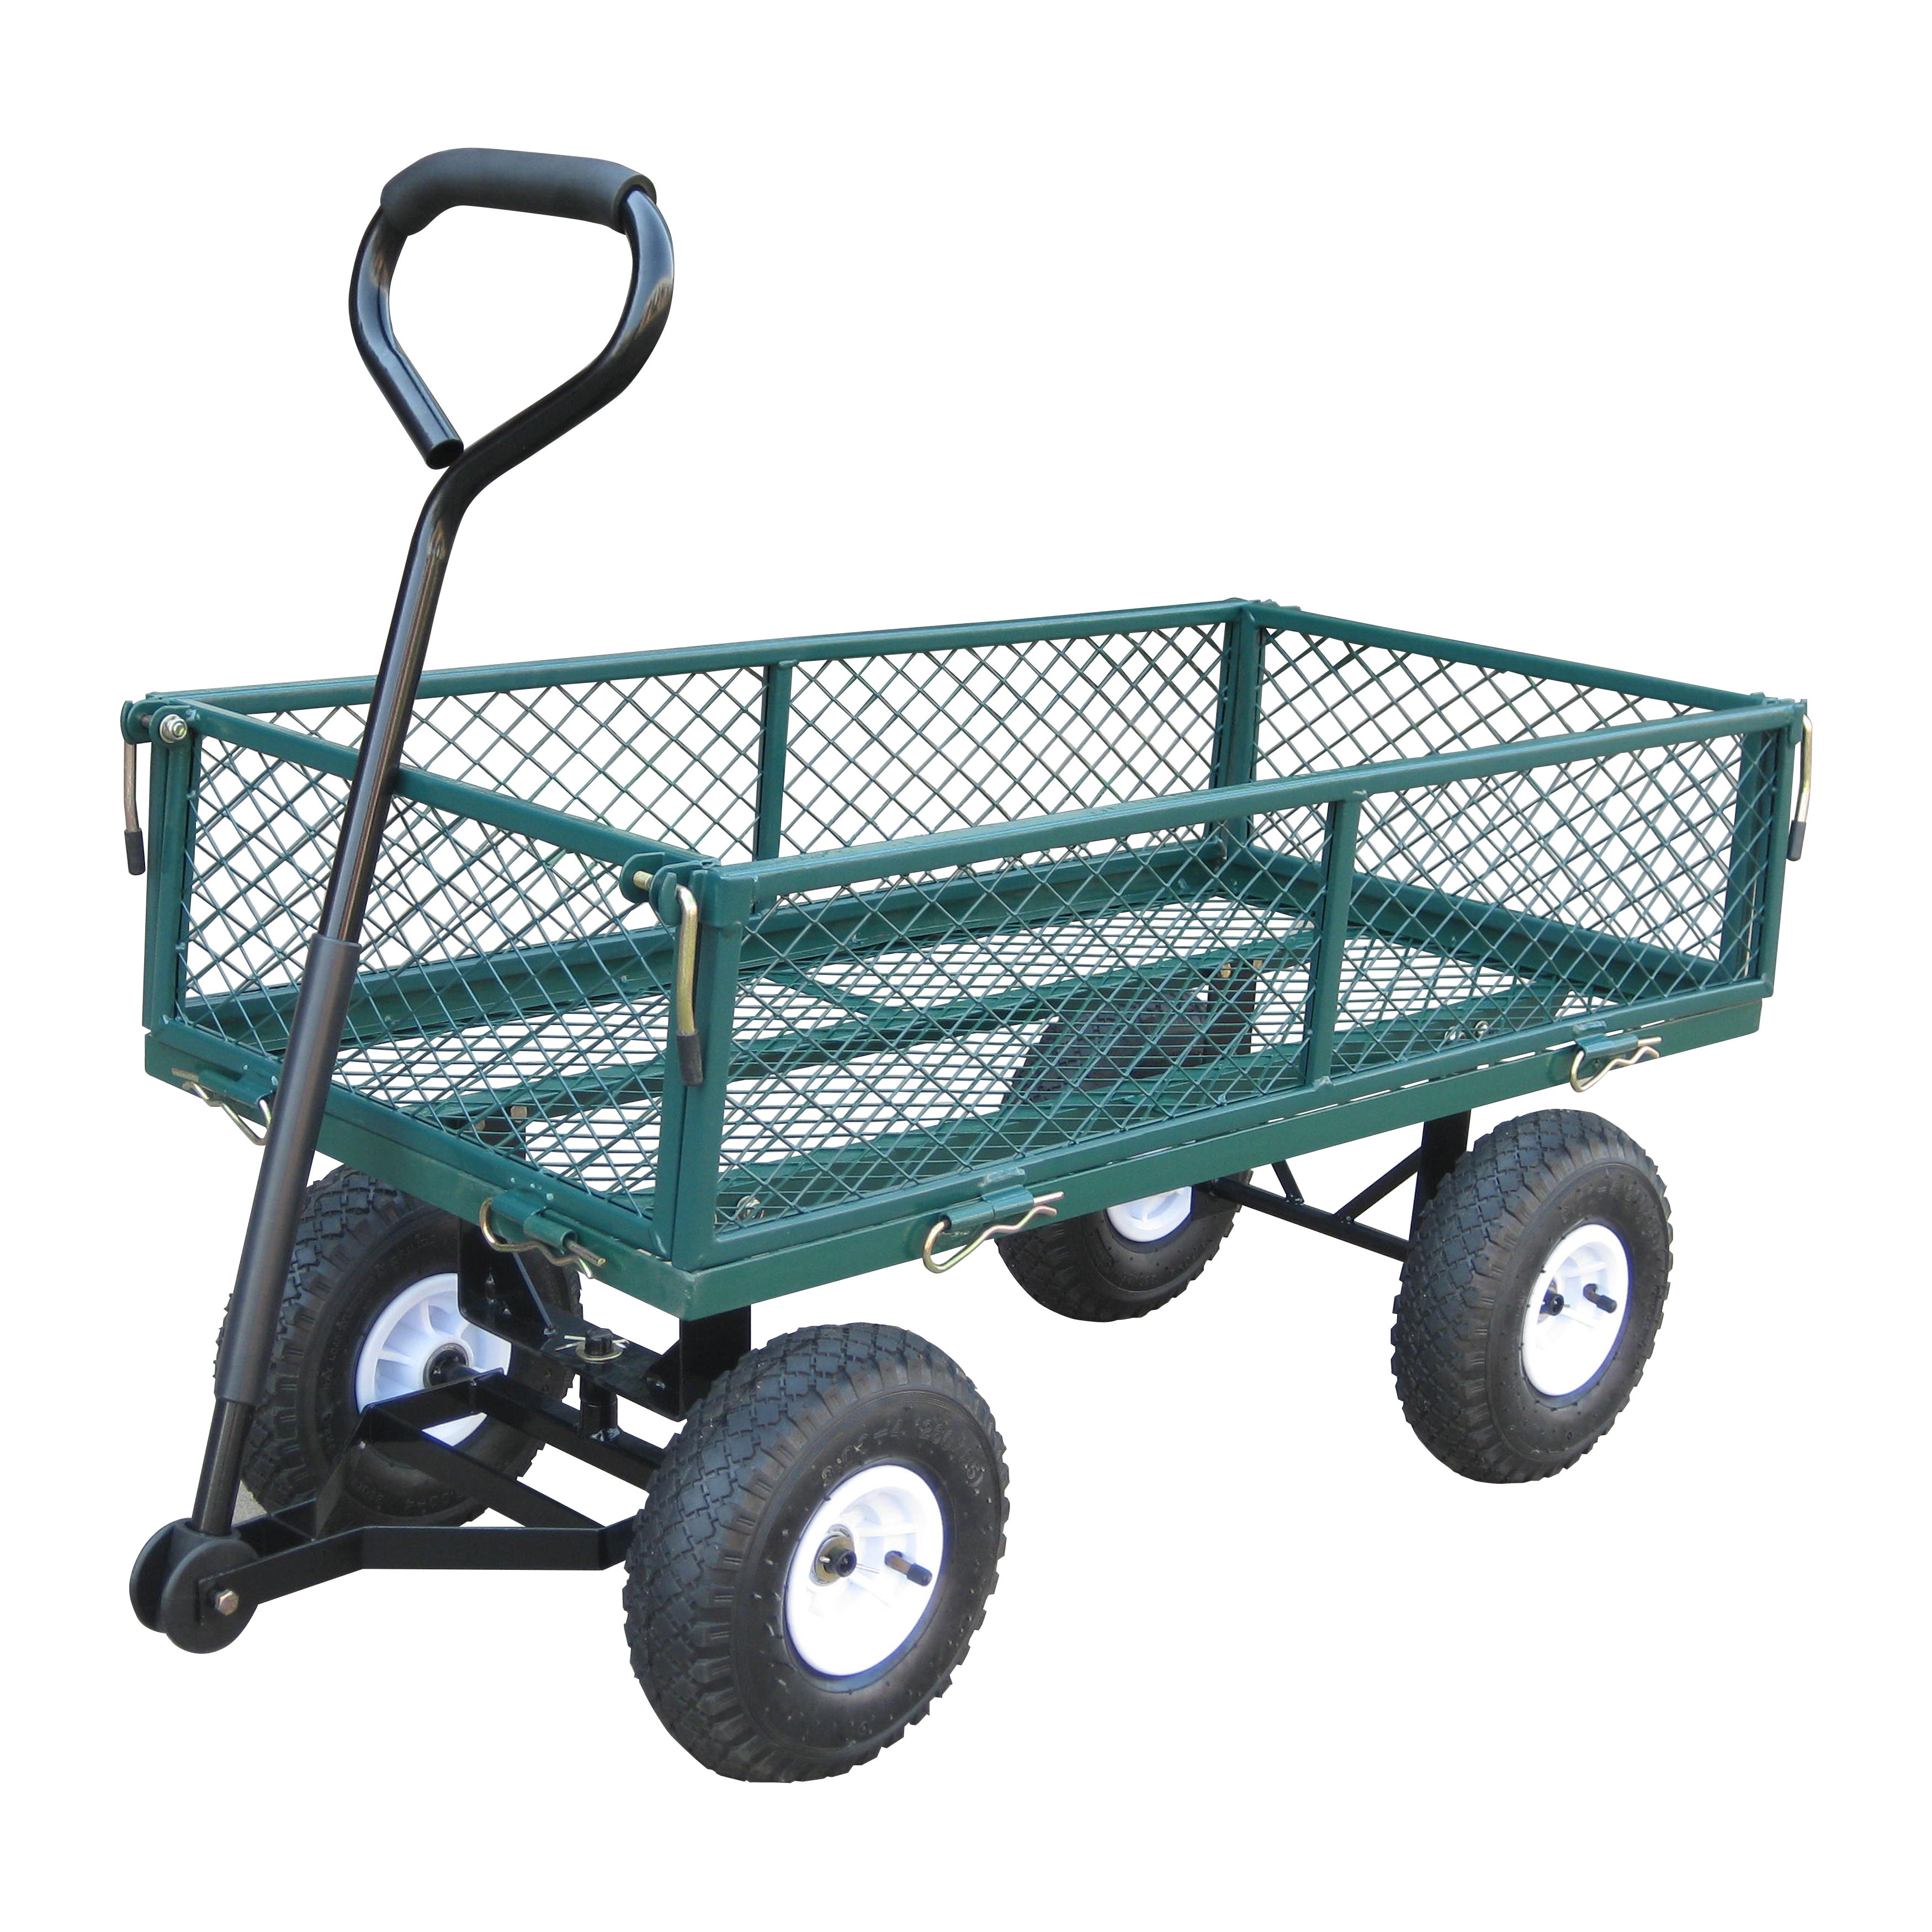 amazon with frame wheelbarrows com dp air and patio lawn steel pneumatic tires marathon product green filled cart wheels garden dl